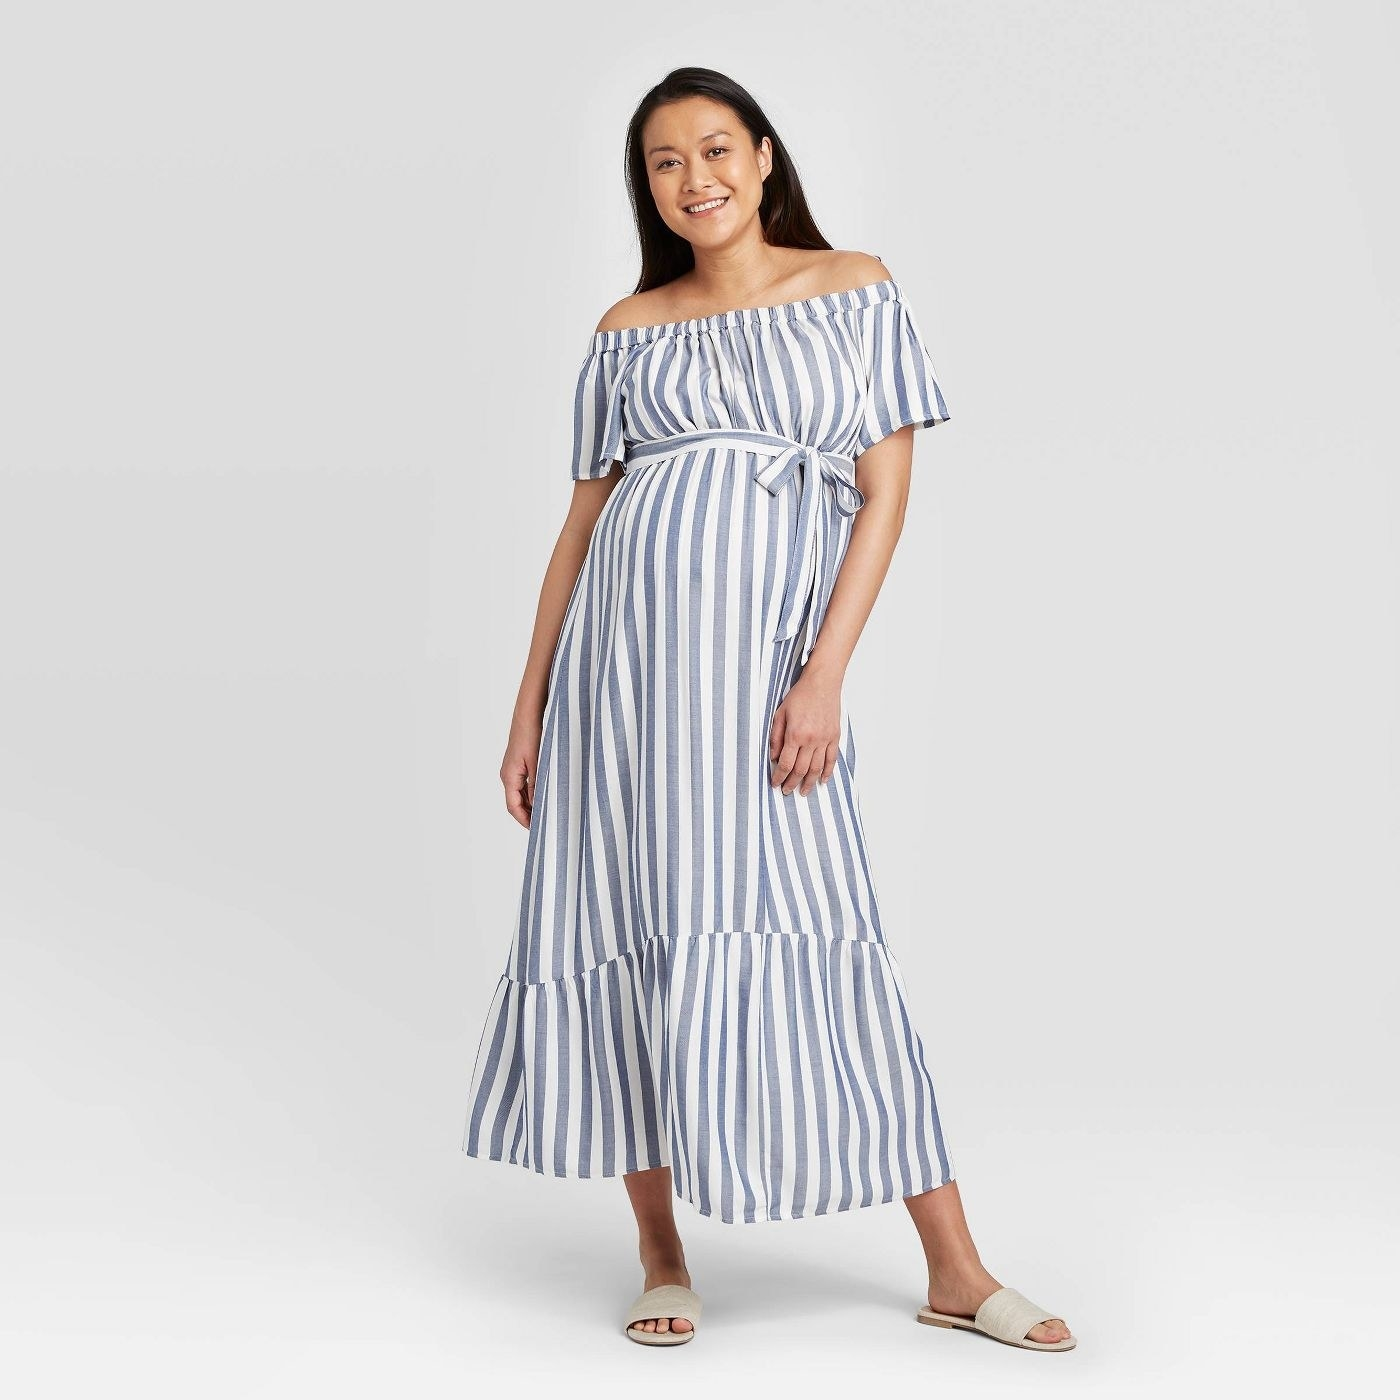 A model in a blue and white horizontally striped dress that falls at the ankle